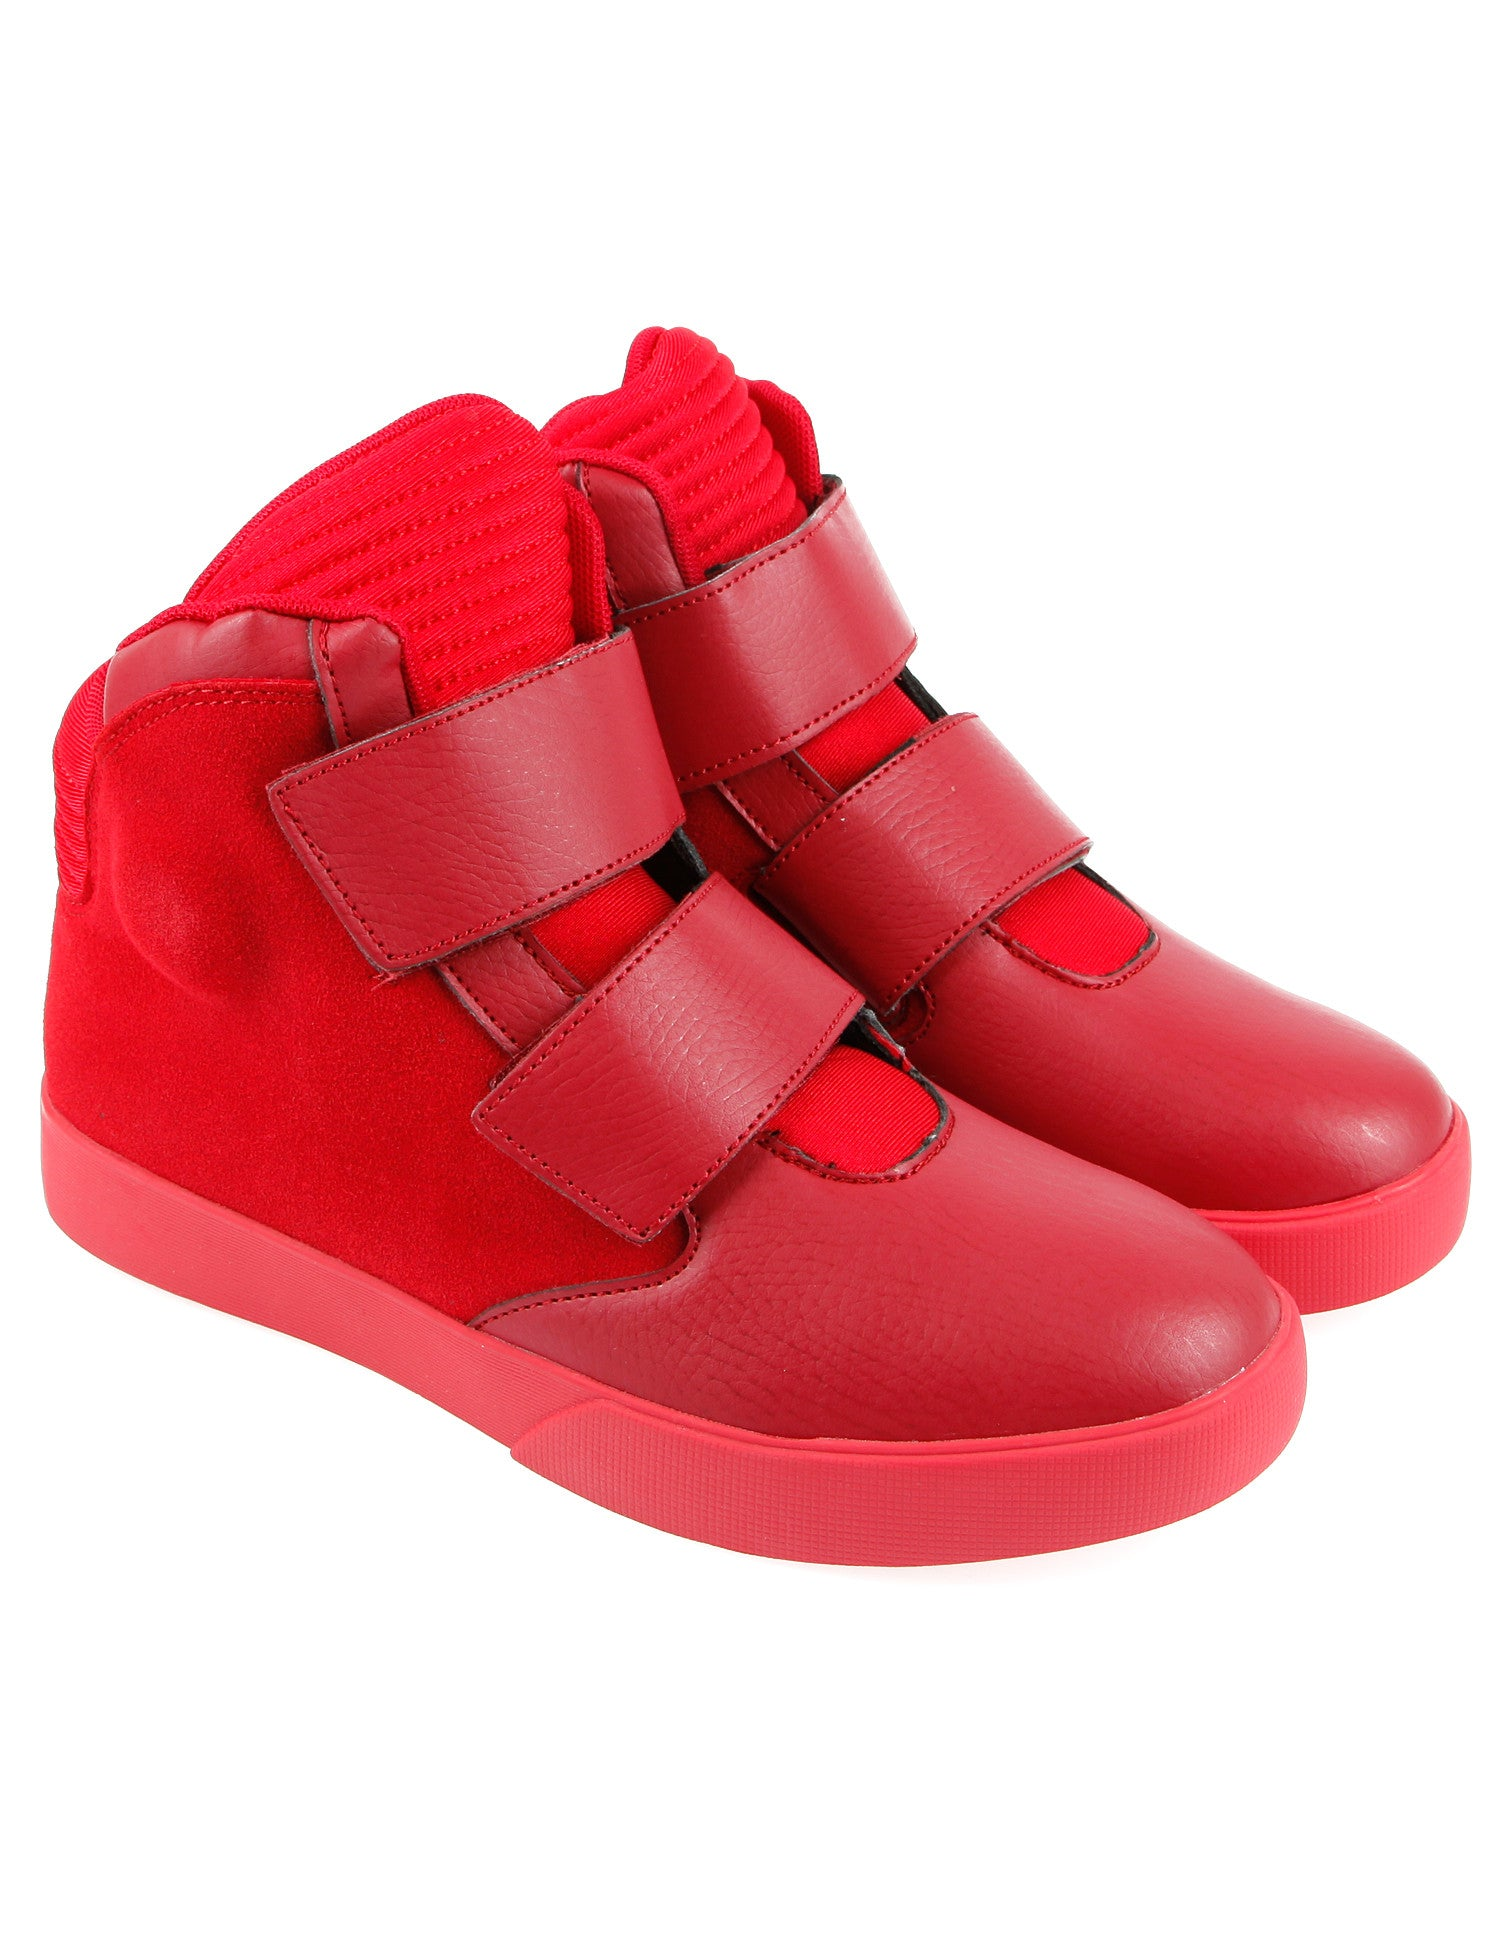 Cultz 150821 Shoes  Red